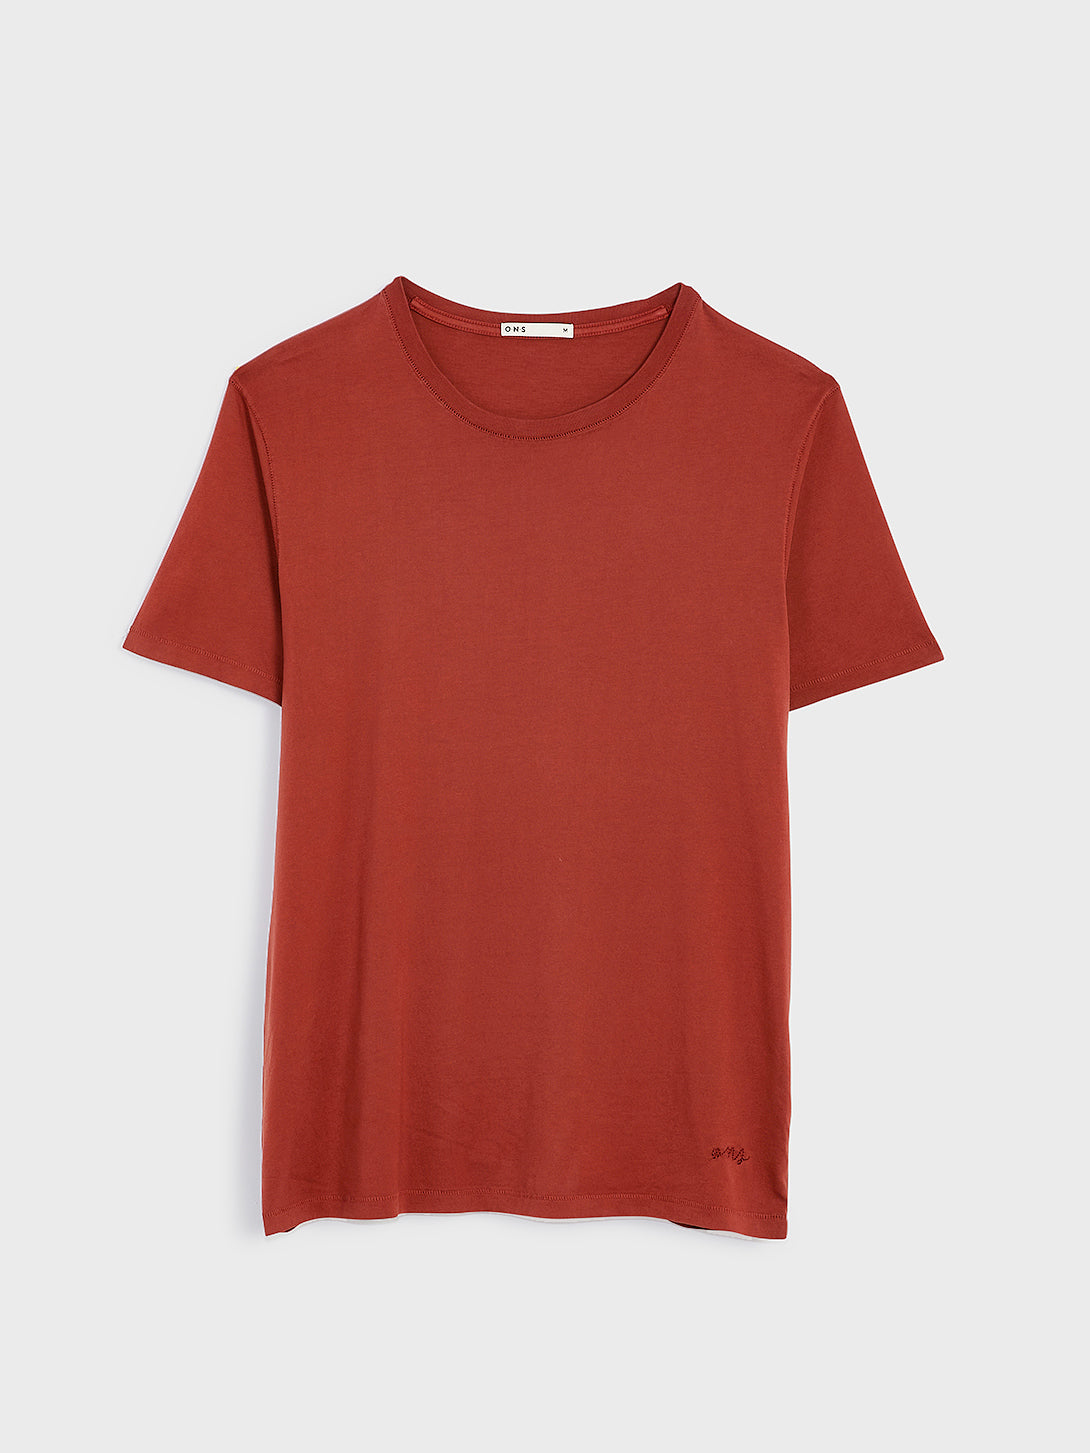 ONS VILLAGE CREW NECK TEE BURNT HENNA RED 100% Supima Cotton, Pre-shrunk cotton